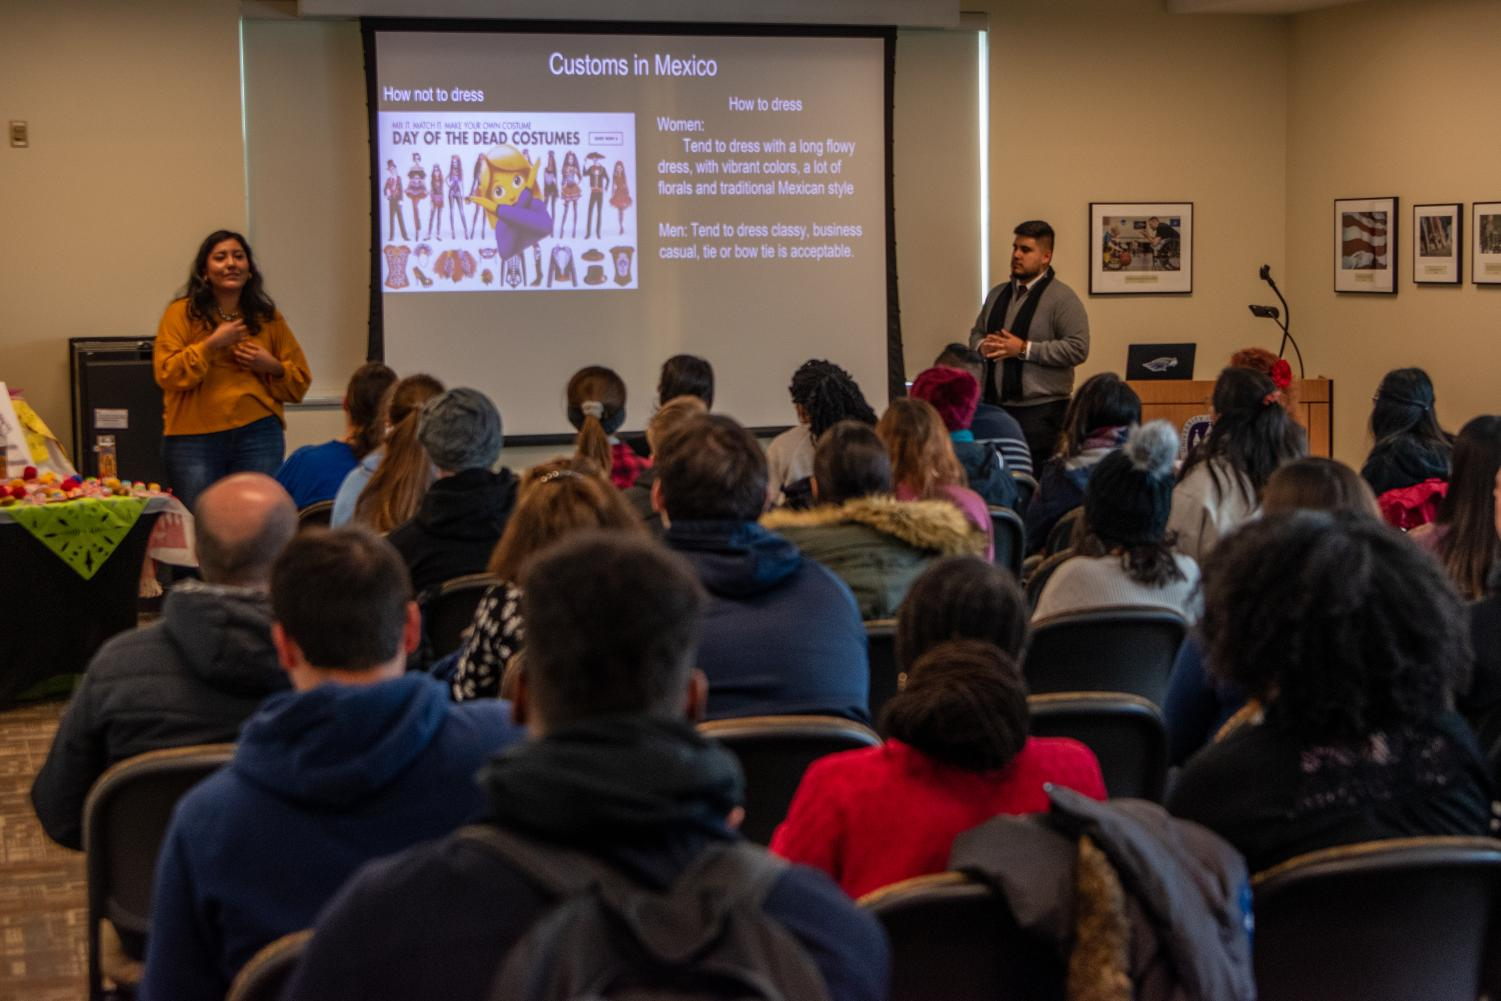 A presentation was given at Dia de los Muertos in the University Center for Latinx Day Heritage.